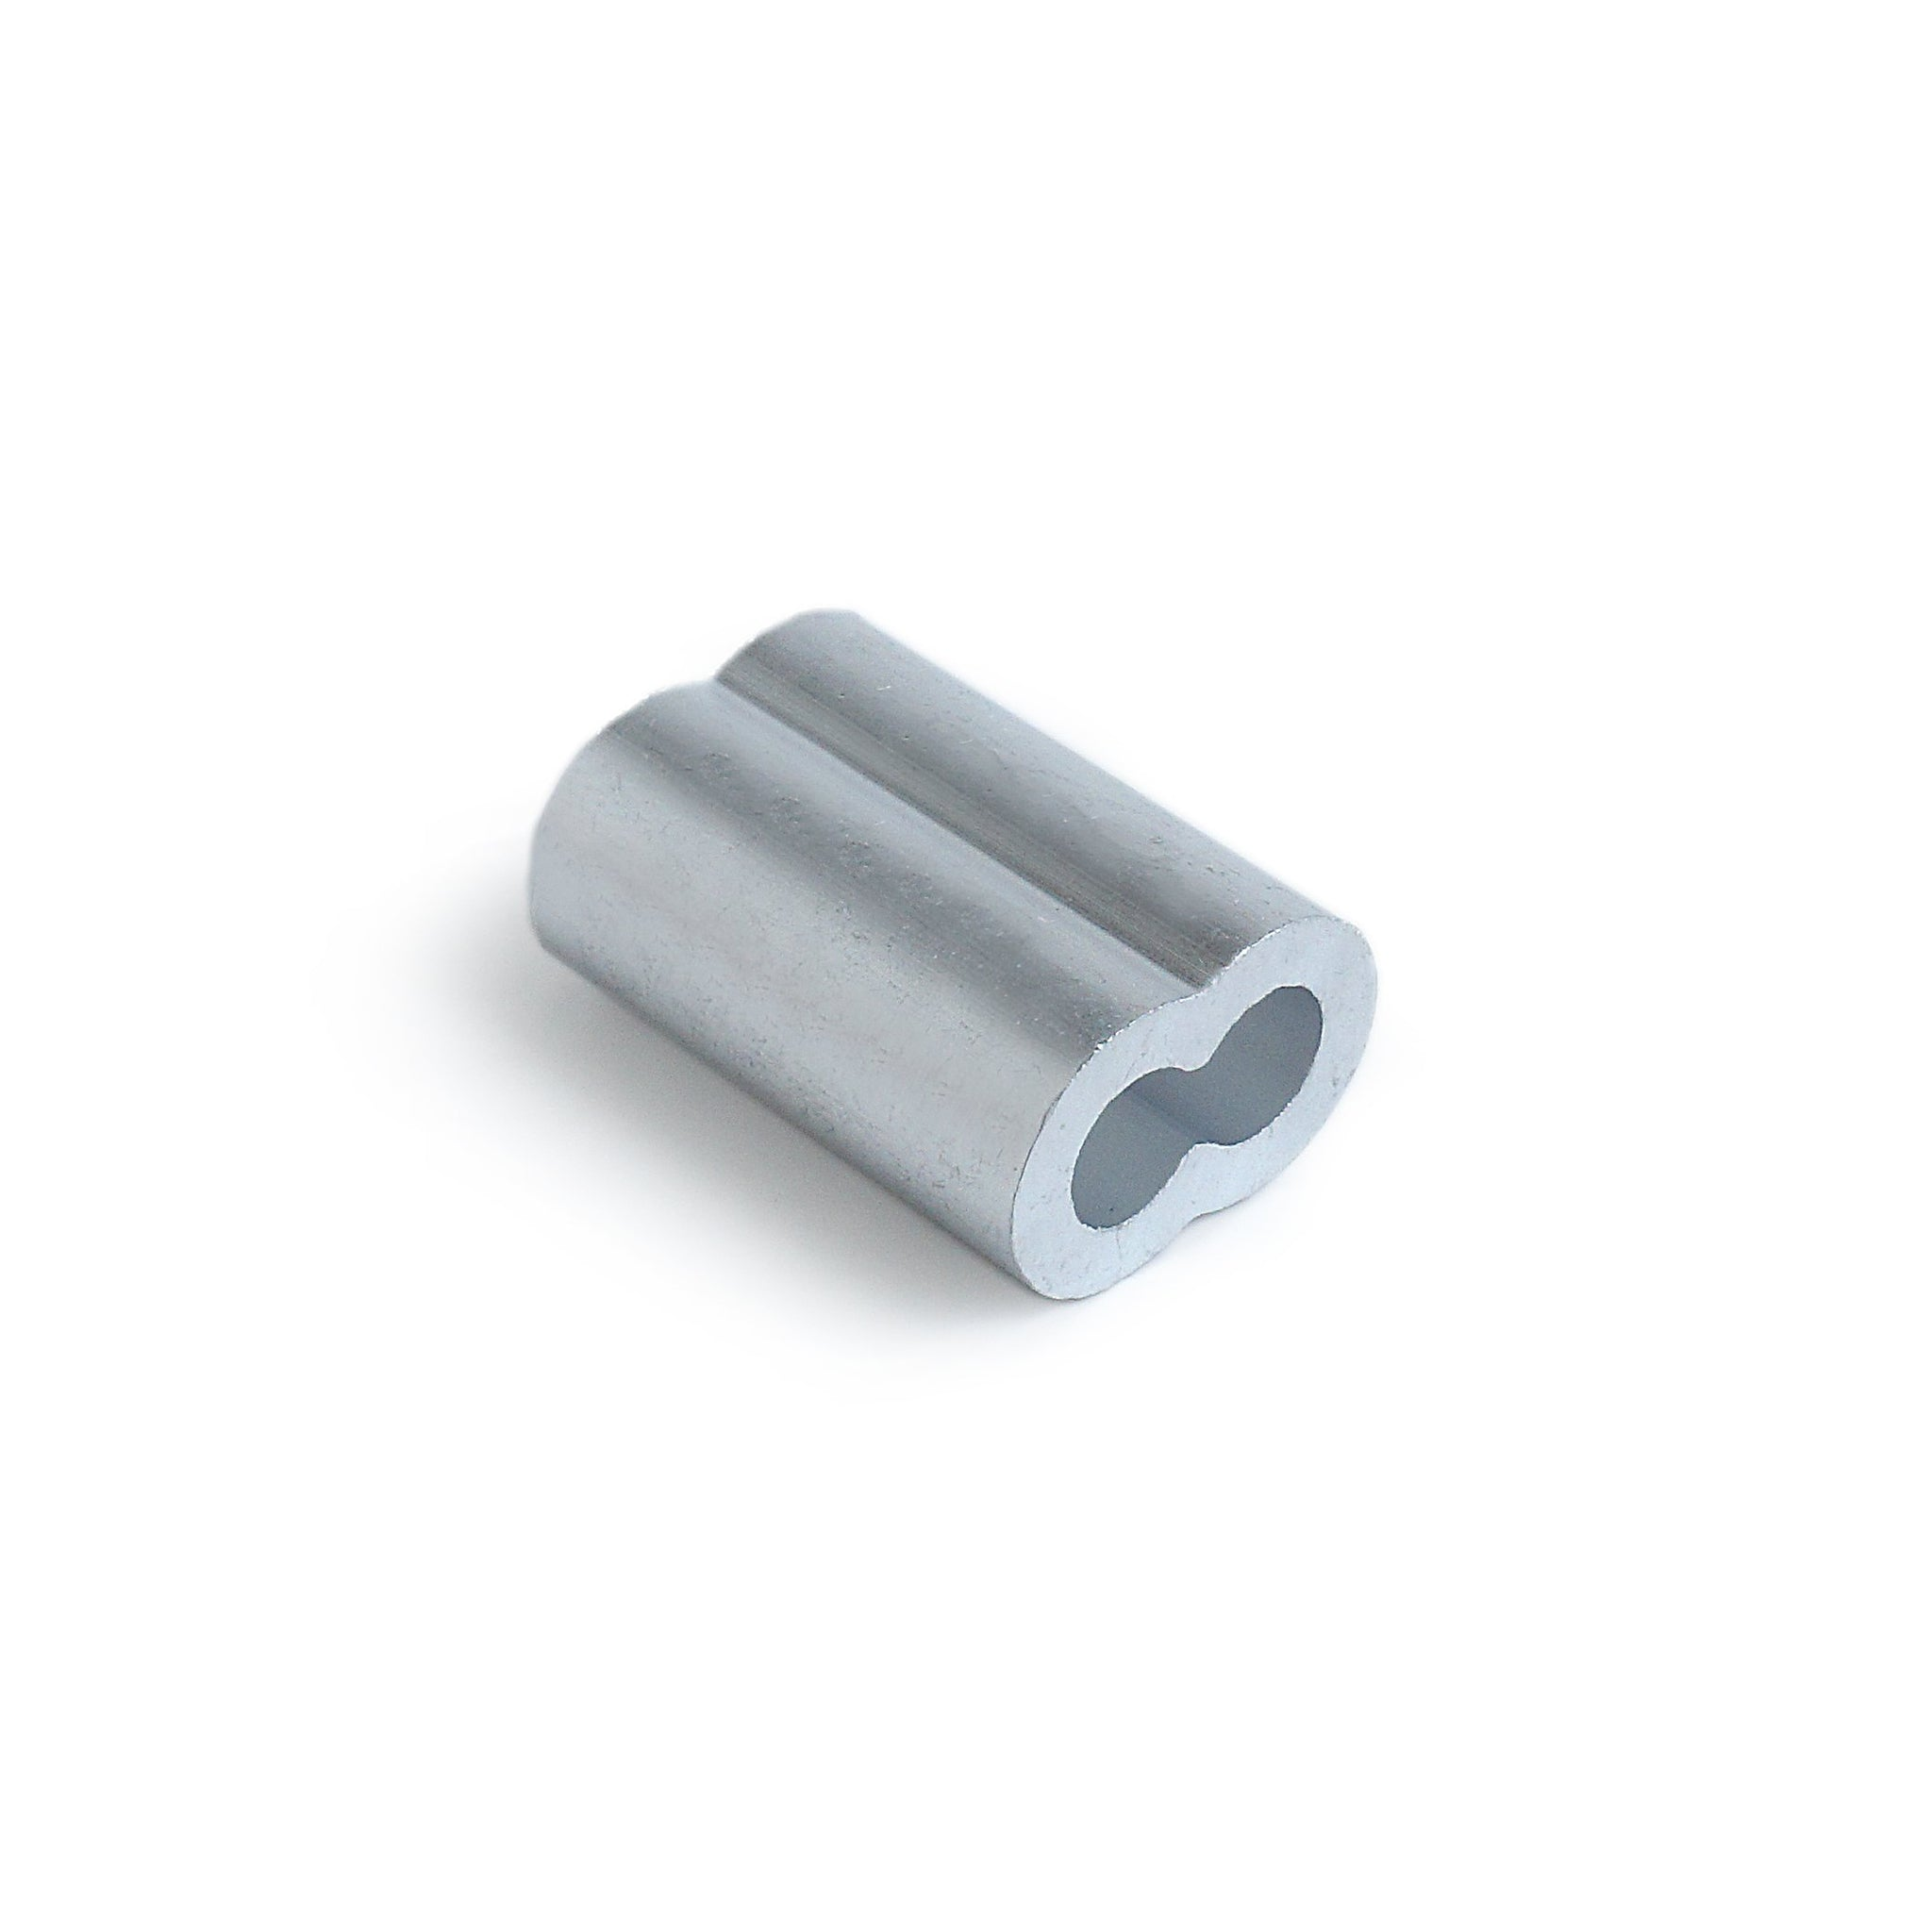 AS-10.0 (10mm Alloy swage for wire rope)